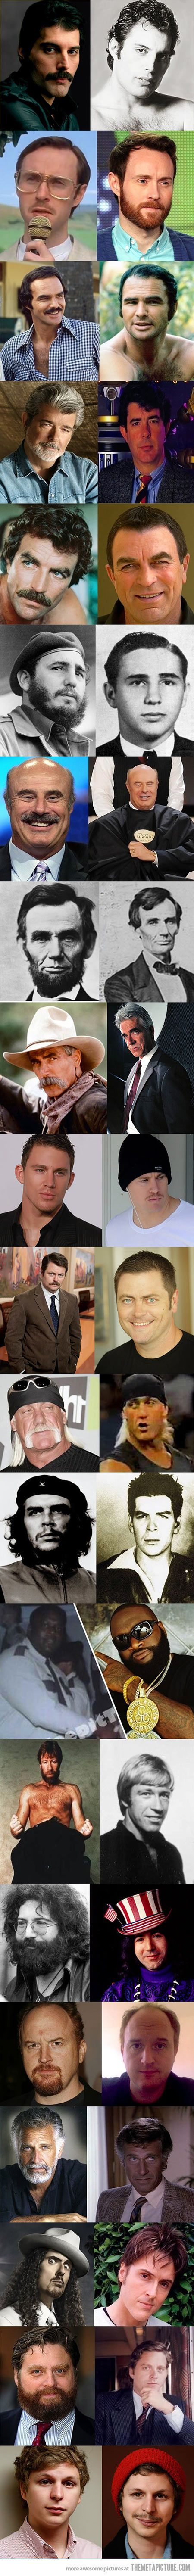 Beards can change everything… Ron Swanson was a mind blowing one and the last one is hilariously disturbing